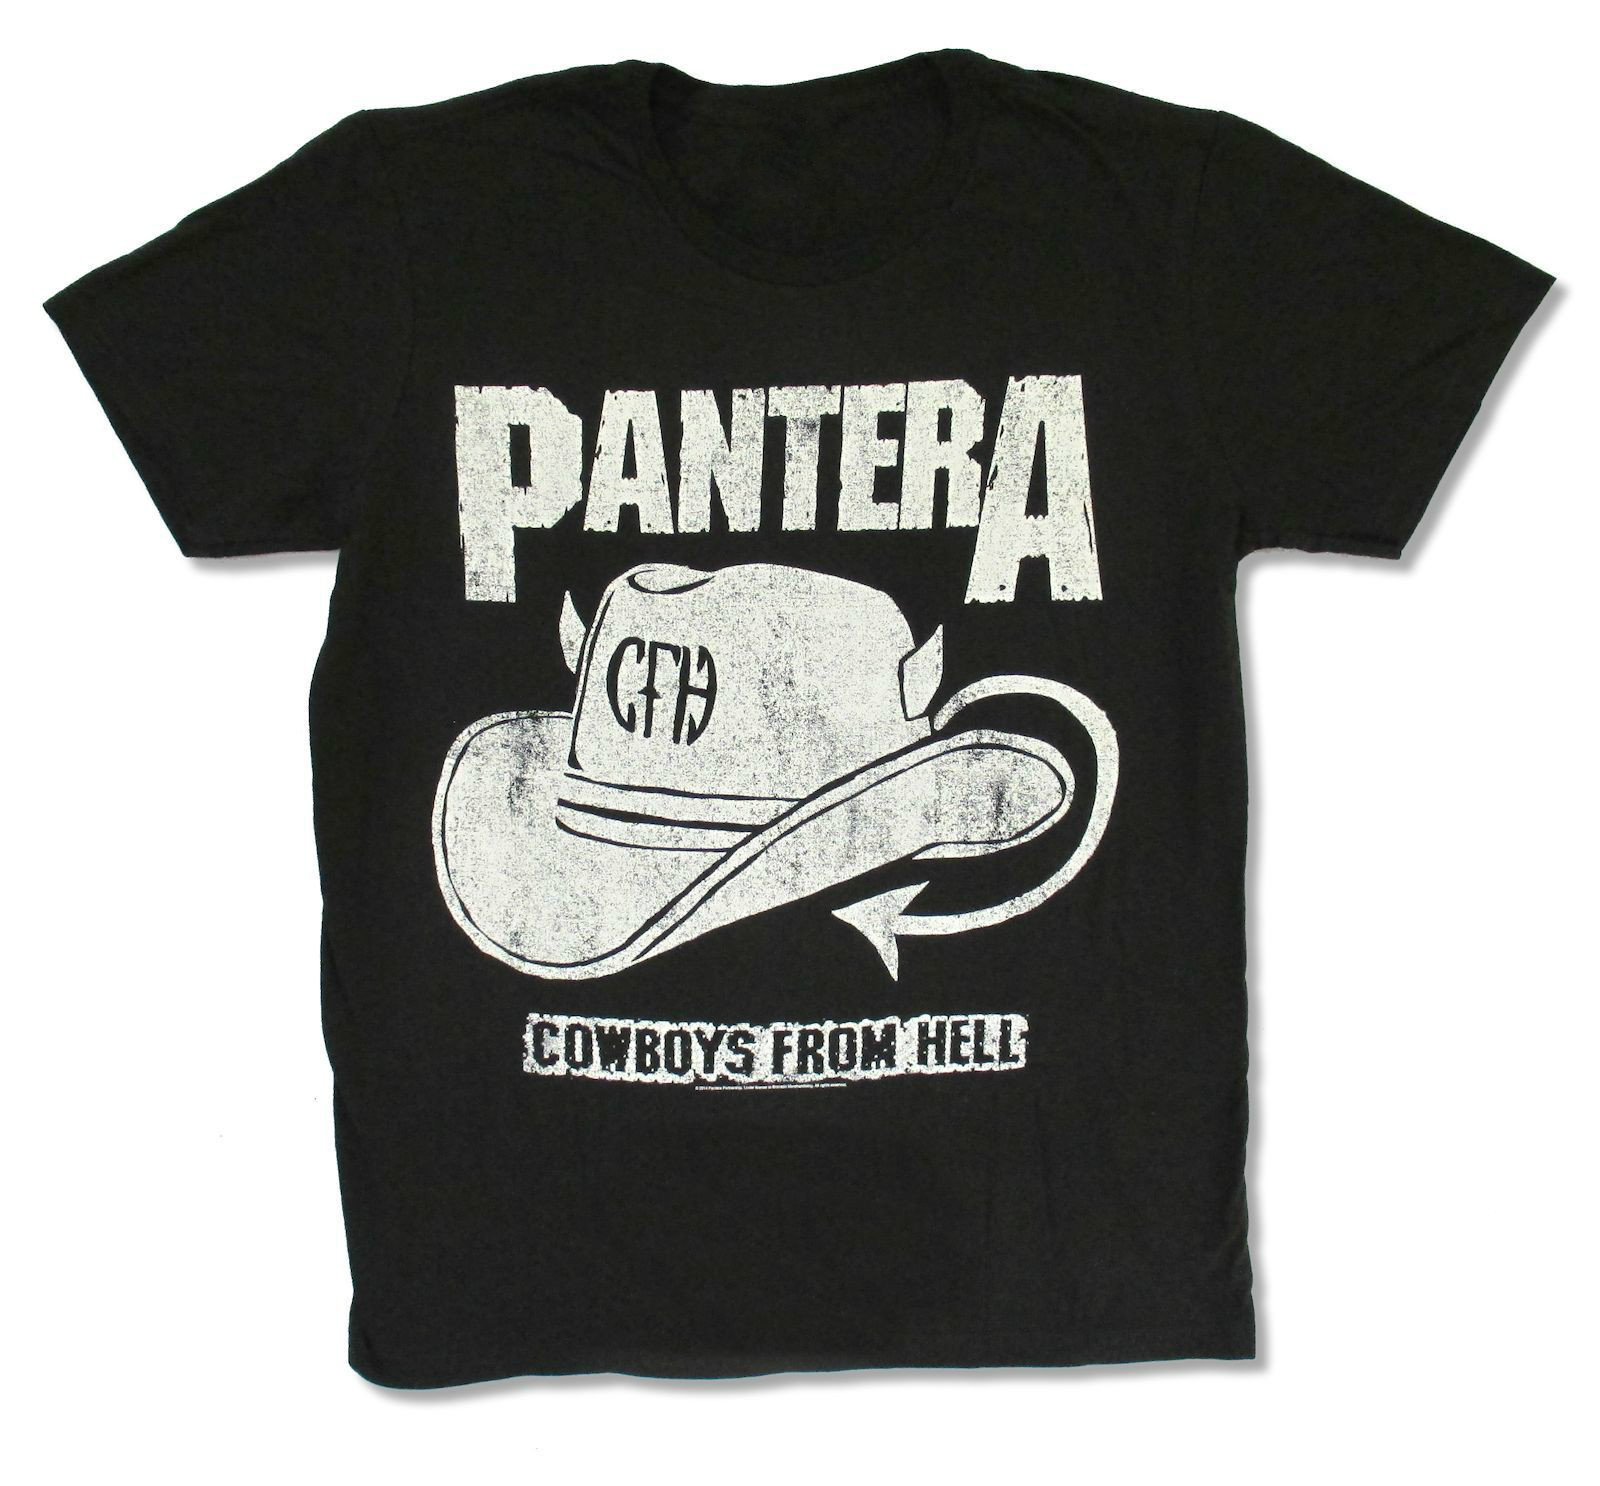 Design your own t-shirt and hats - Pantera Distressed Hat Black T Shirt New Official Adult Design And Print Your